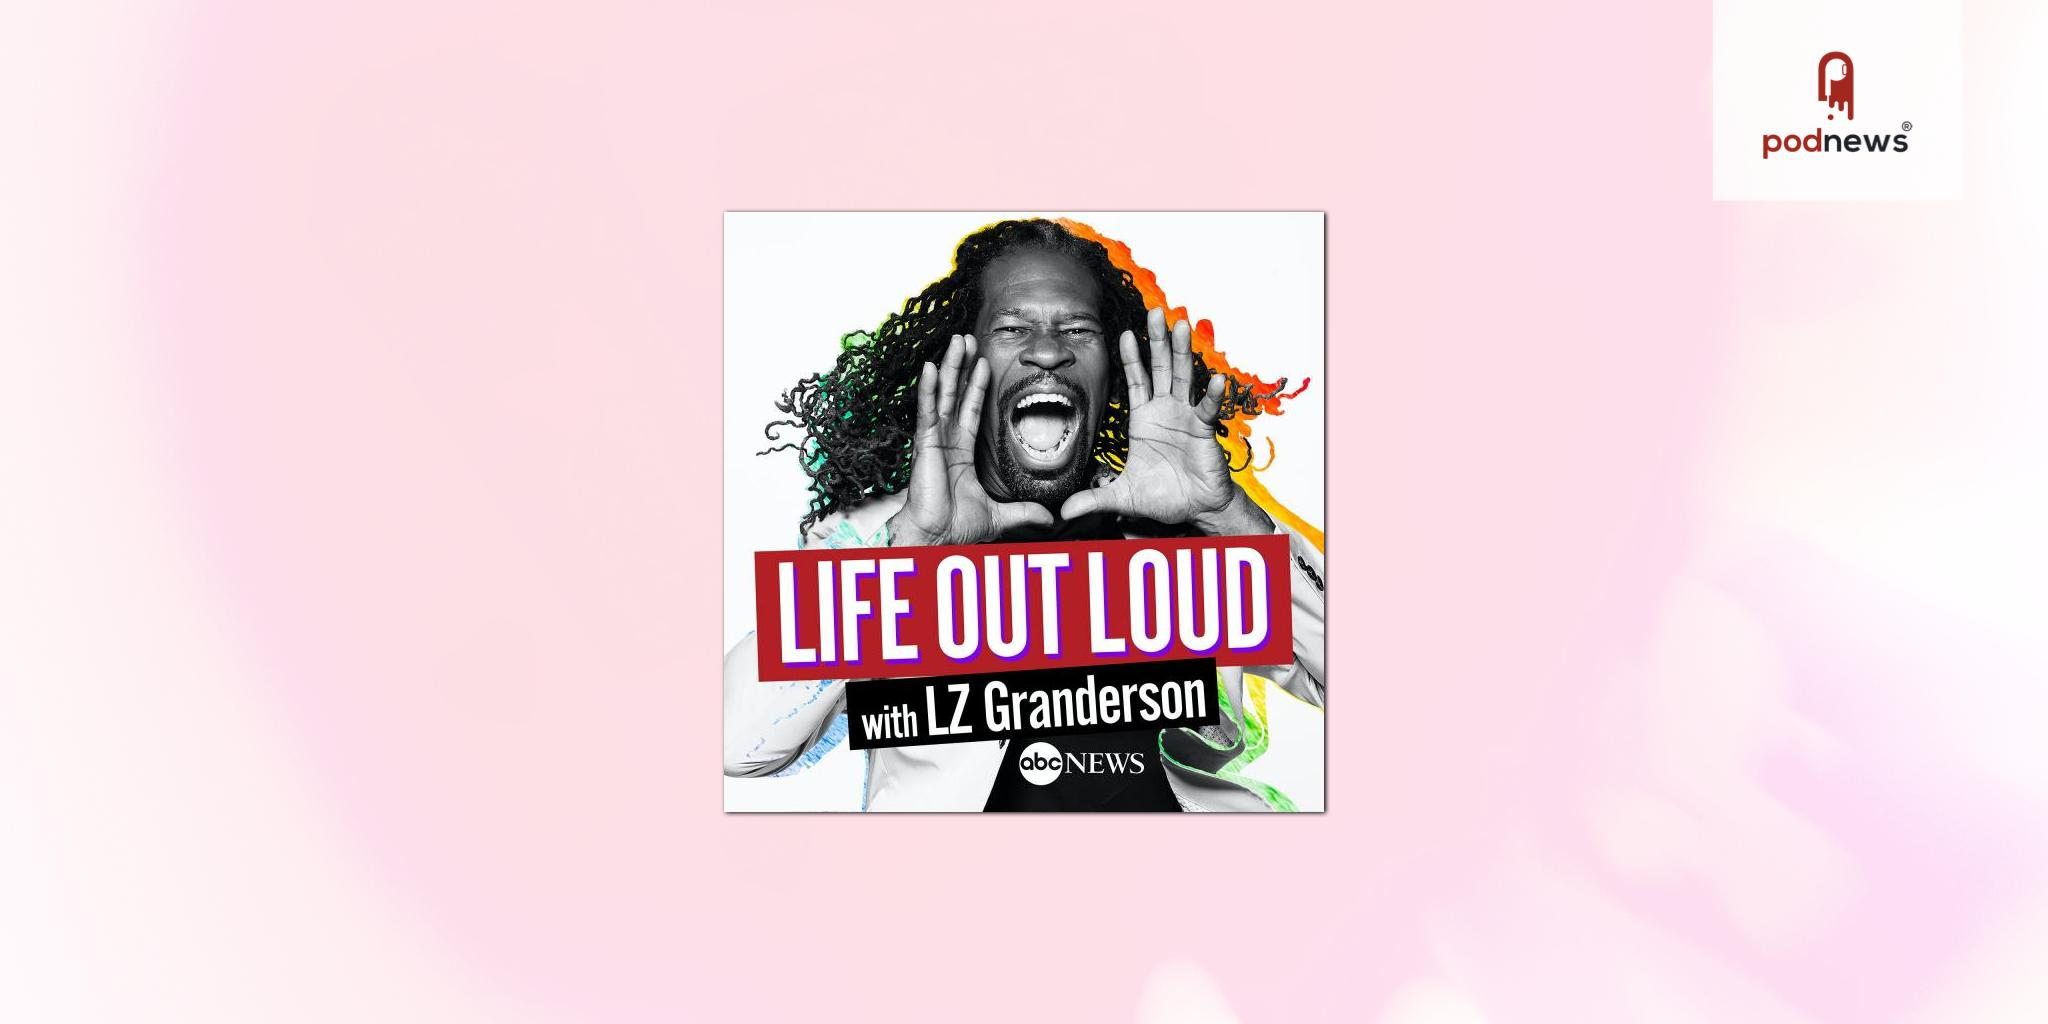 ABC News kicks off Pride month with Life Out Loud, a new podcast about LGBTQ+ community history